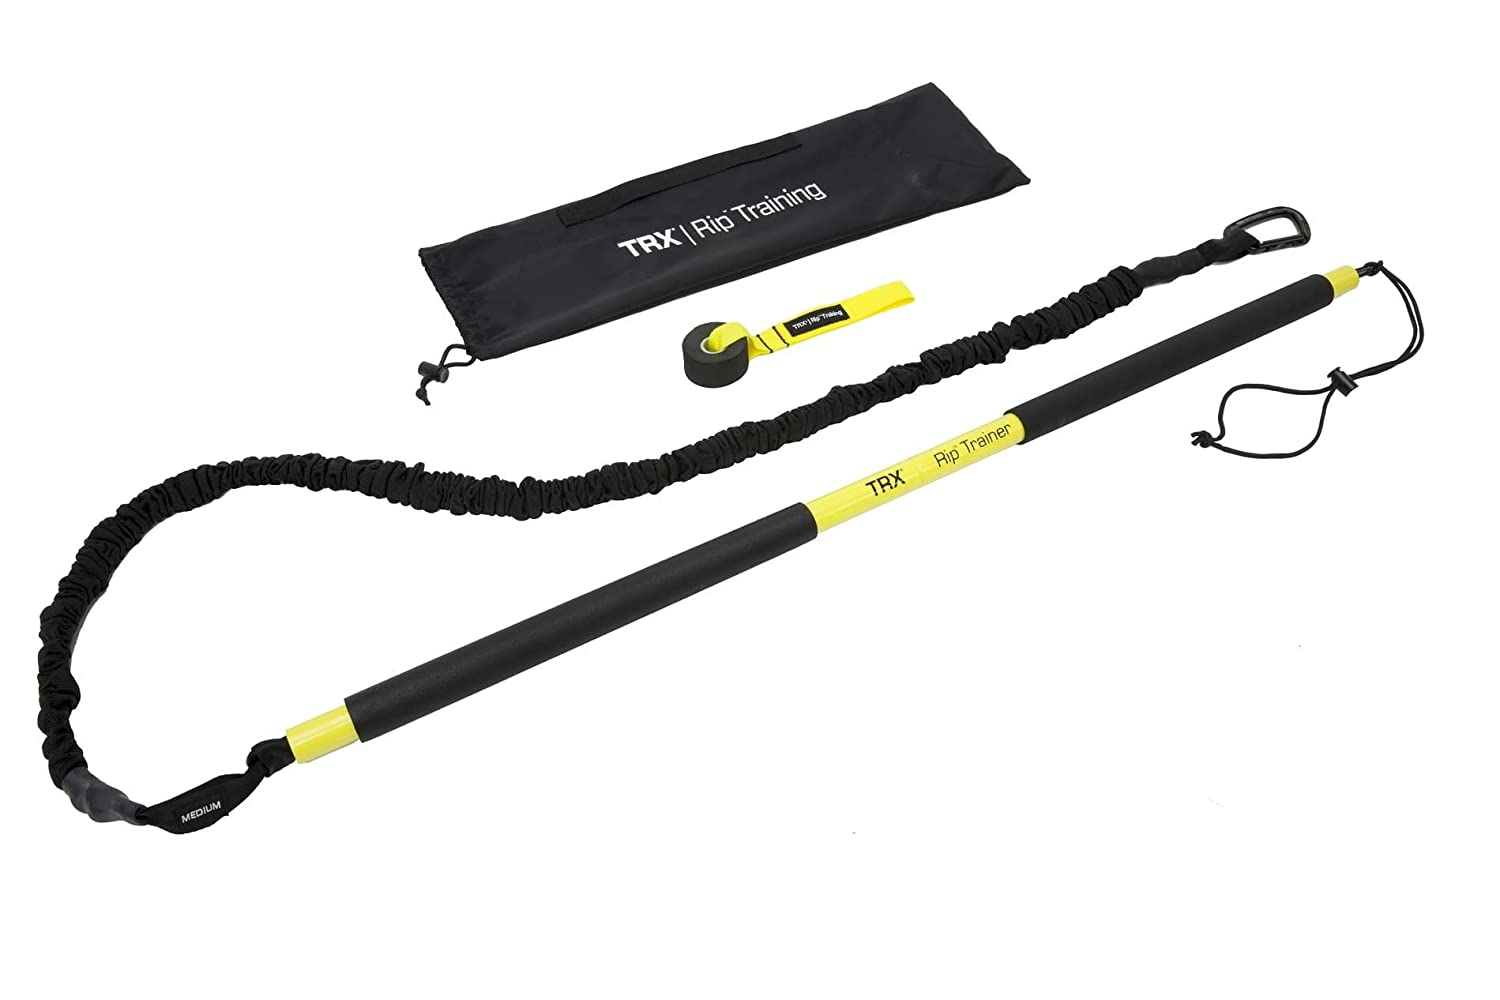 TRX Set Rip Trainer, gelb, tf00182